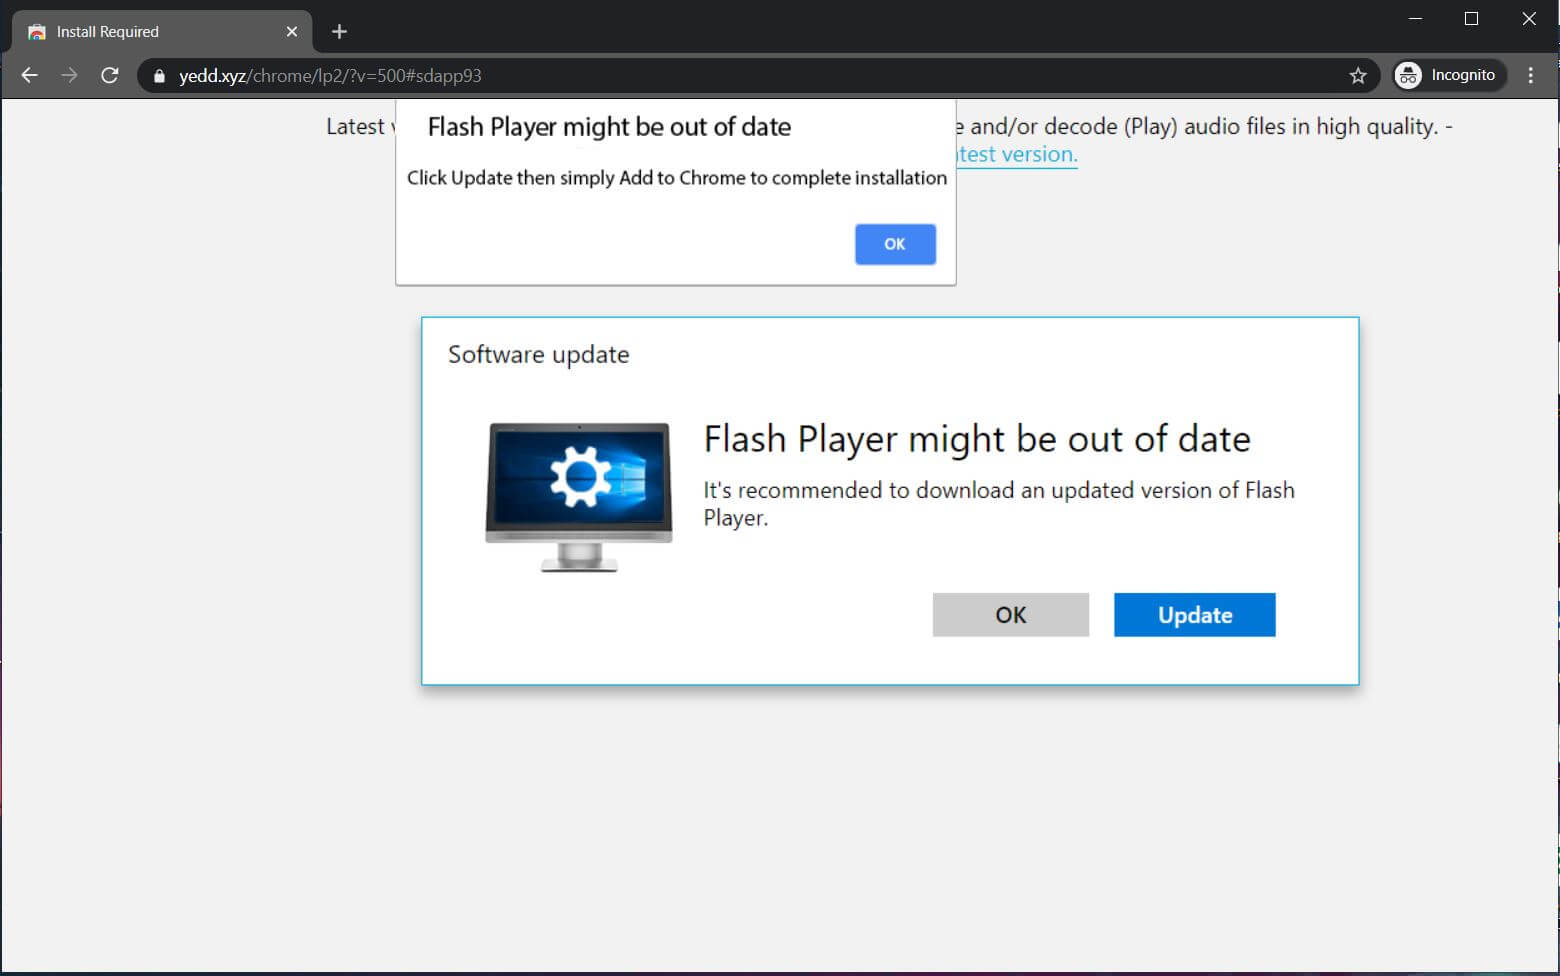 yedd.xyz browser redirect pushes fake flashplayer update rogue software stf